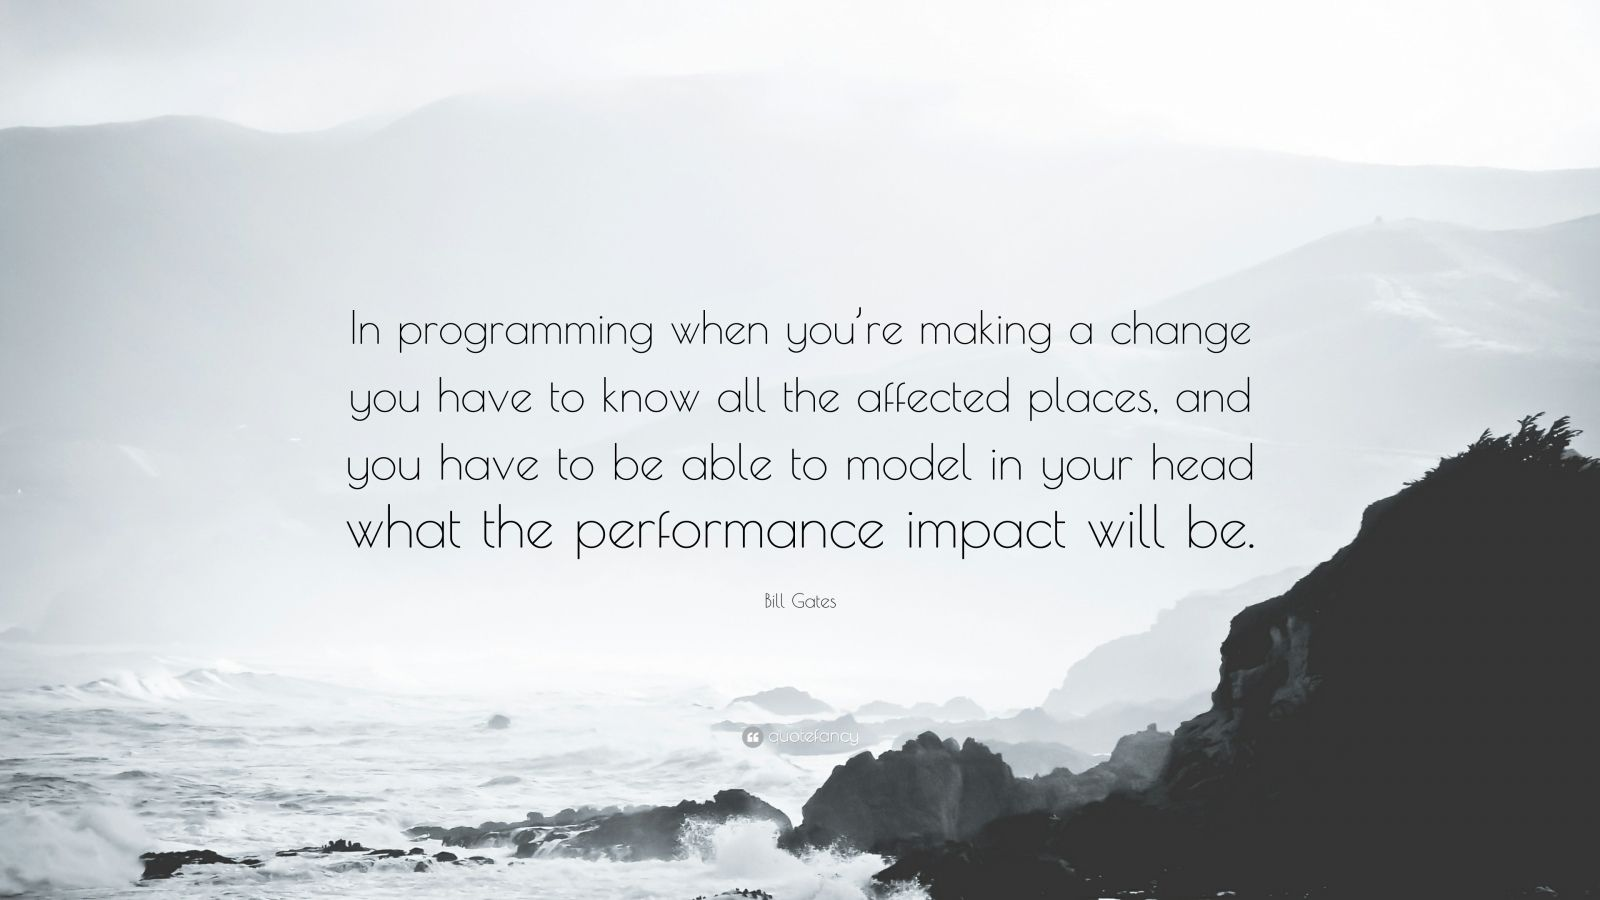 """Bill Gates Quote: """"In programming when you're making a change you have to know all the affected places, and you have to be able to model in your head what the performance impact will be."""""""